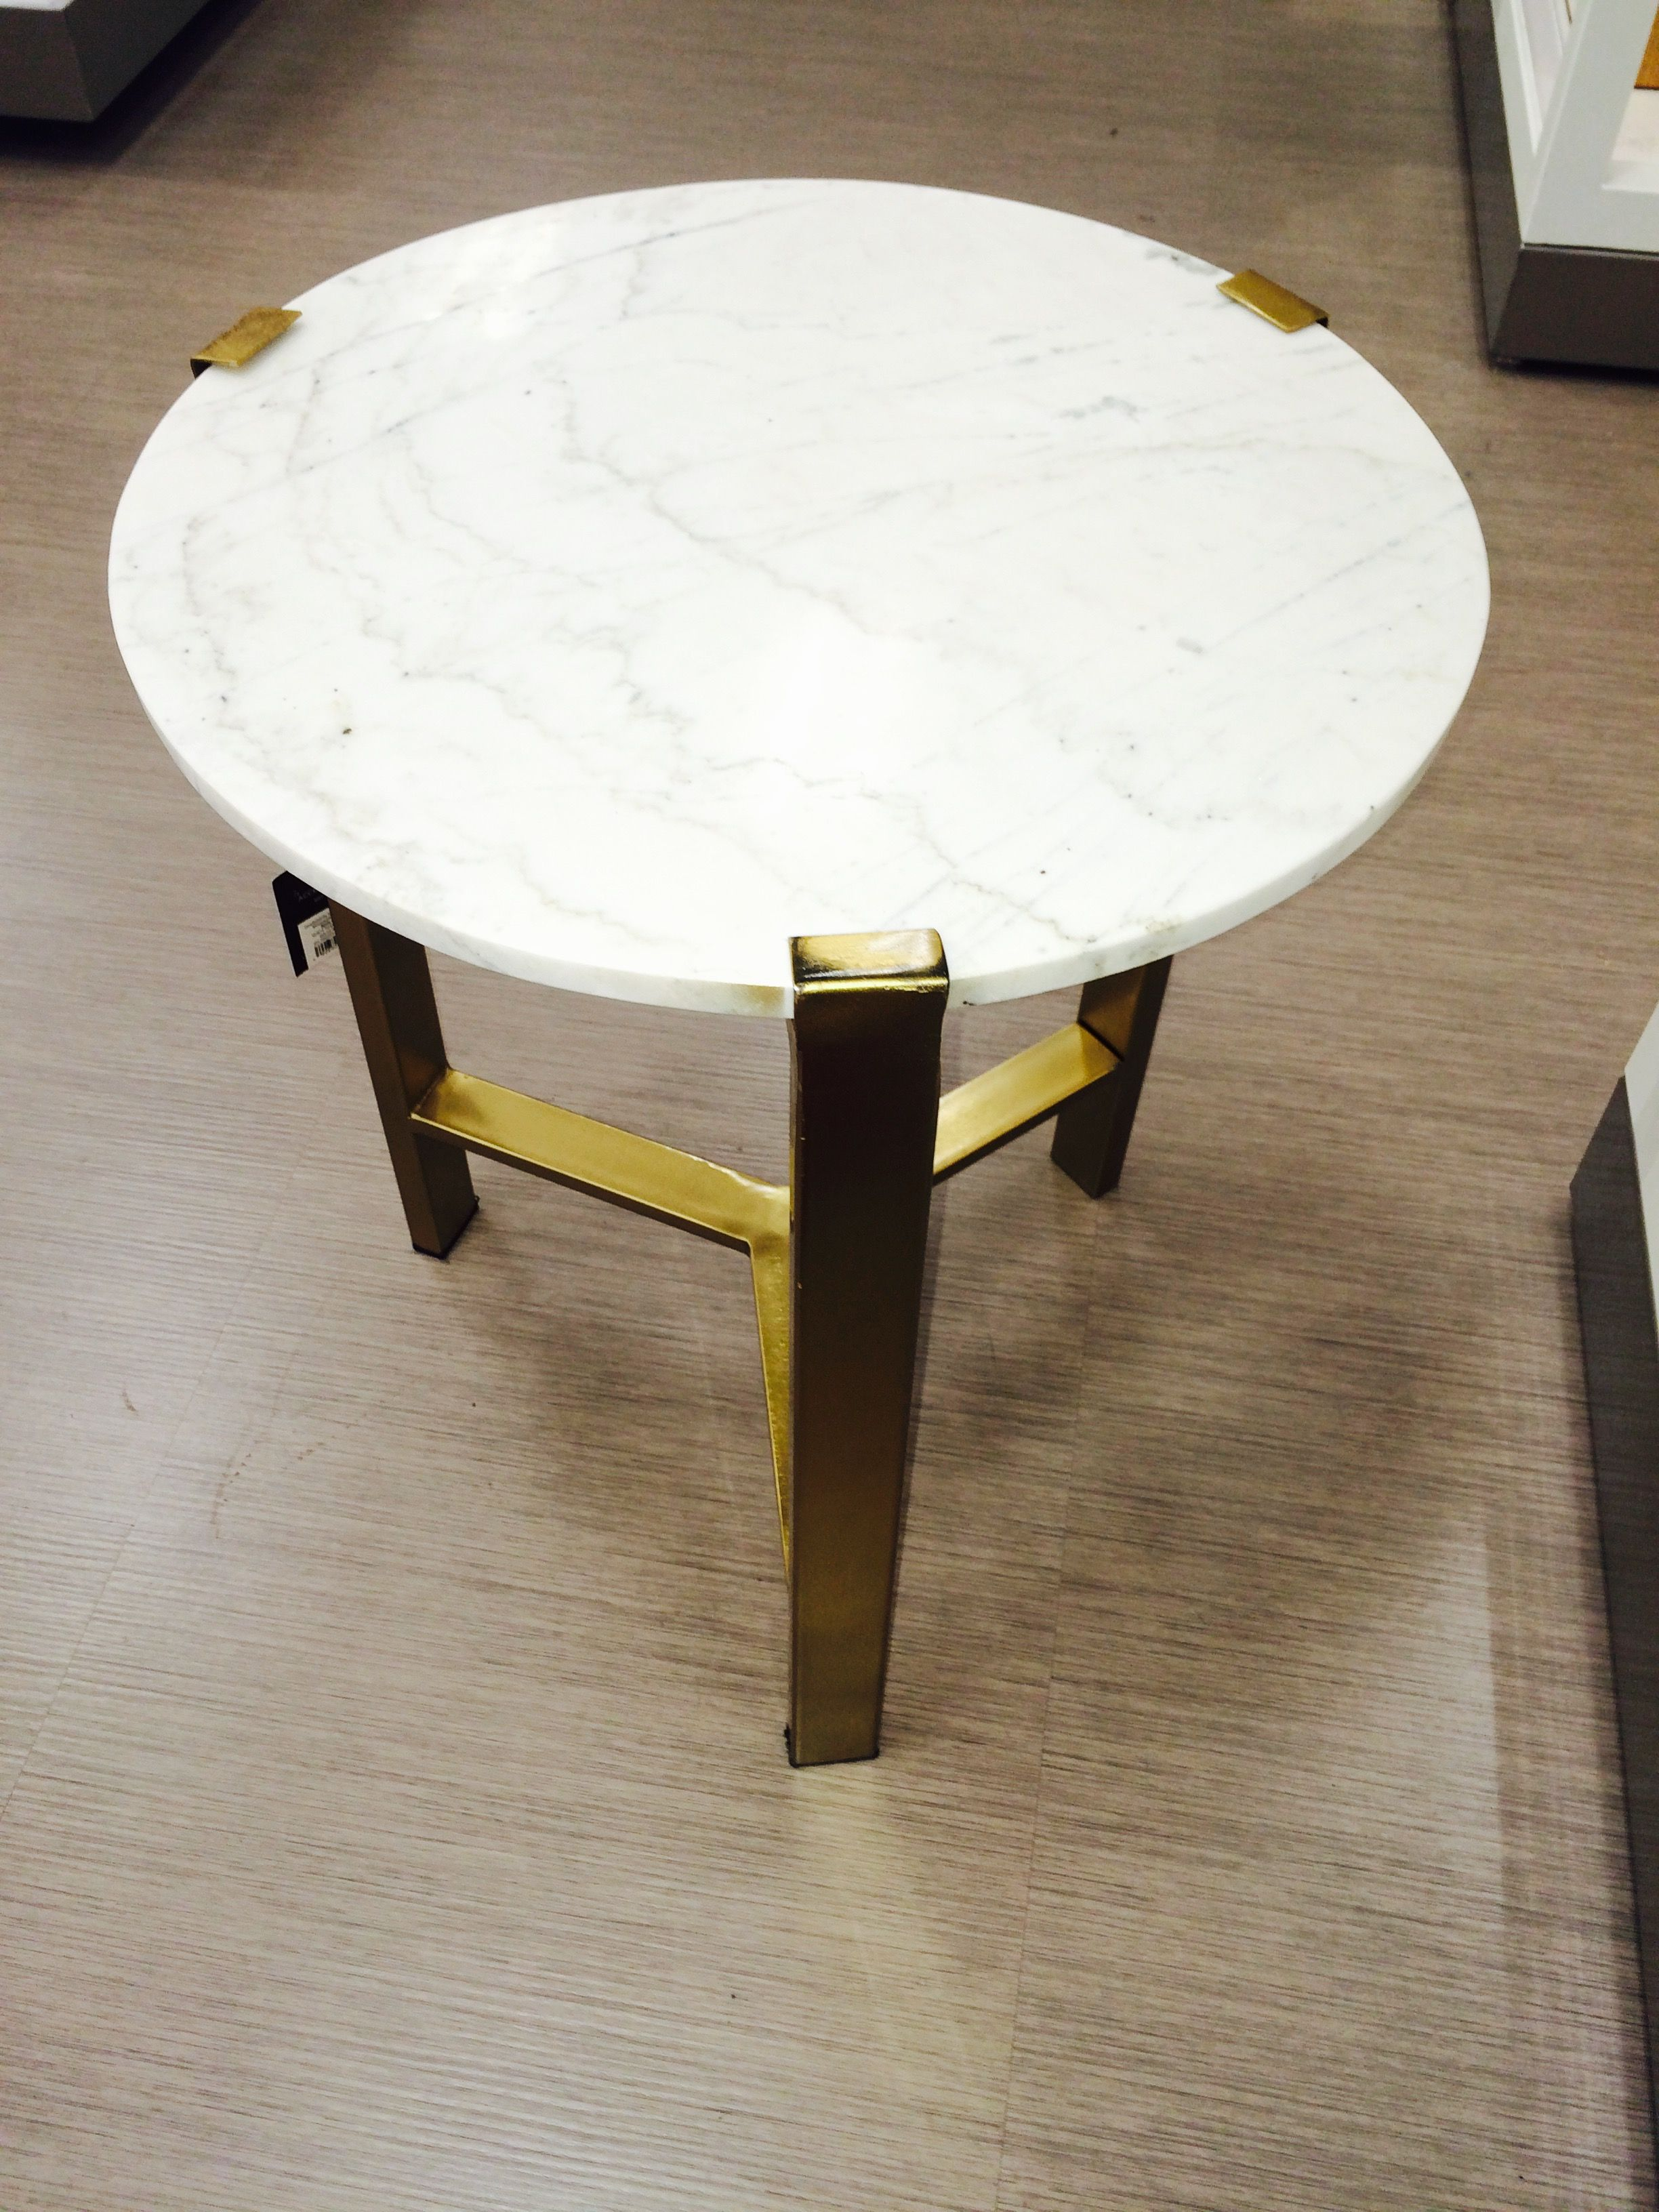 Nate Berkus For Target Gold Accent Table With Marble Top | For The Home |  Pinterest | Nate Berkus, Marble Top And Marbles